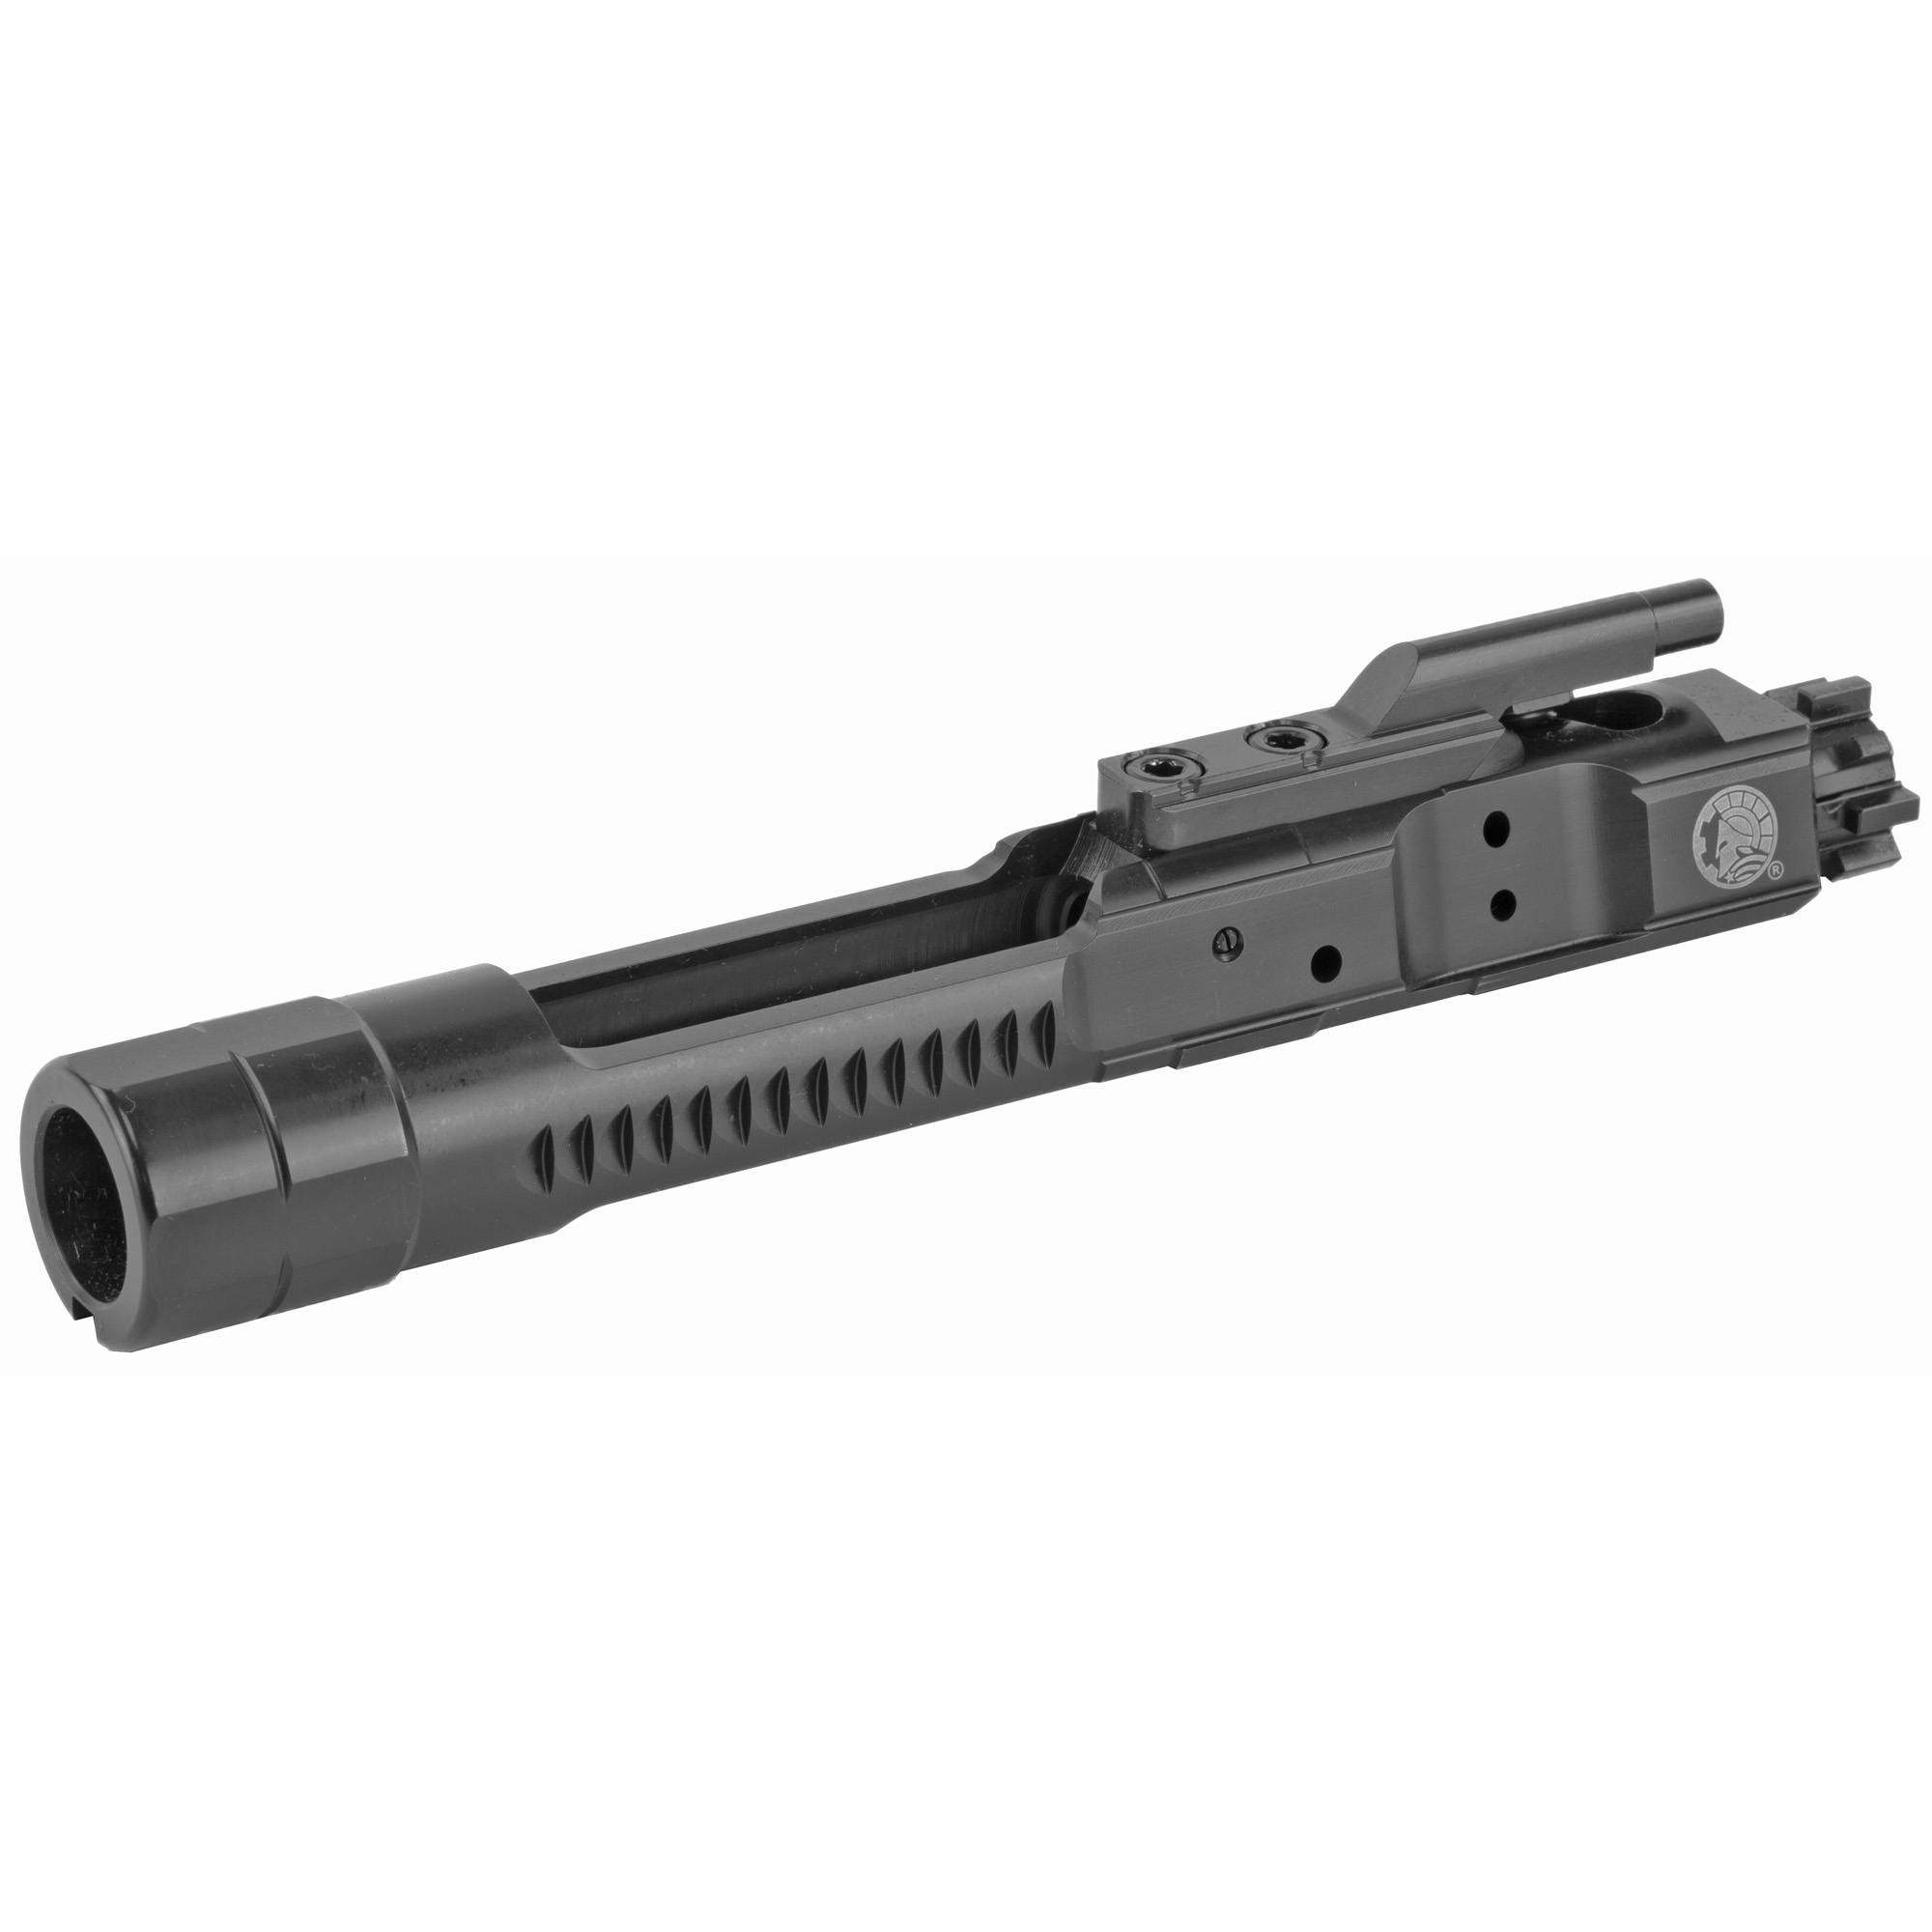 The Enhanced Bolt Carrier Group features new bolt carrier geometry and is designed to reduce carrier tilt. The key bearing surfaces are relocated to increase reliability and are properly staked.